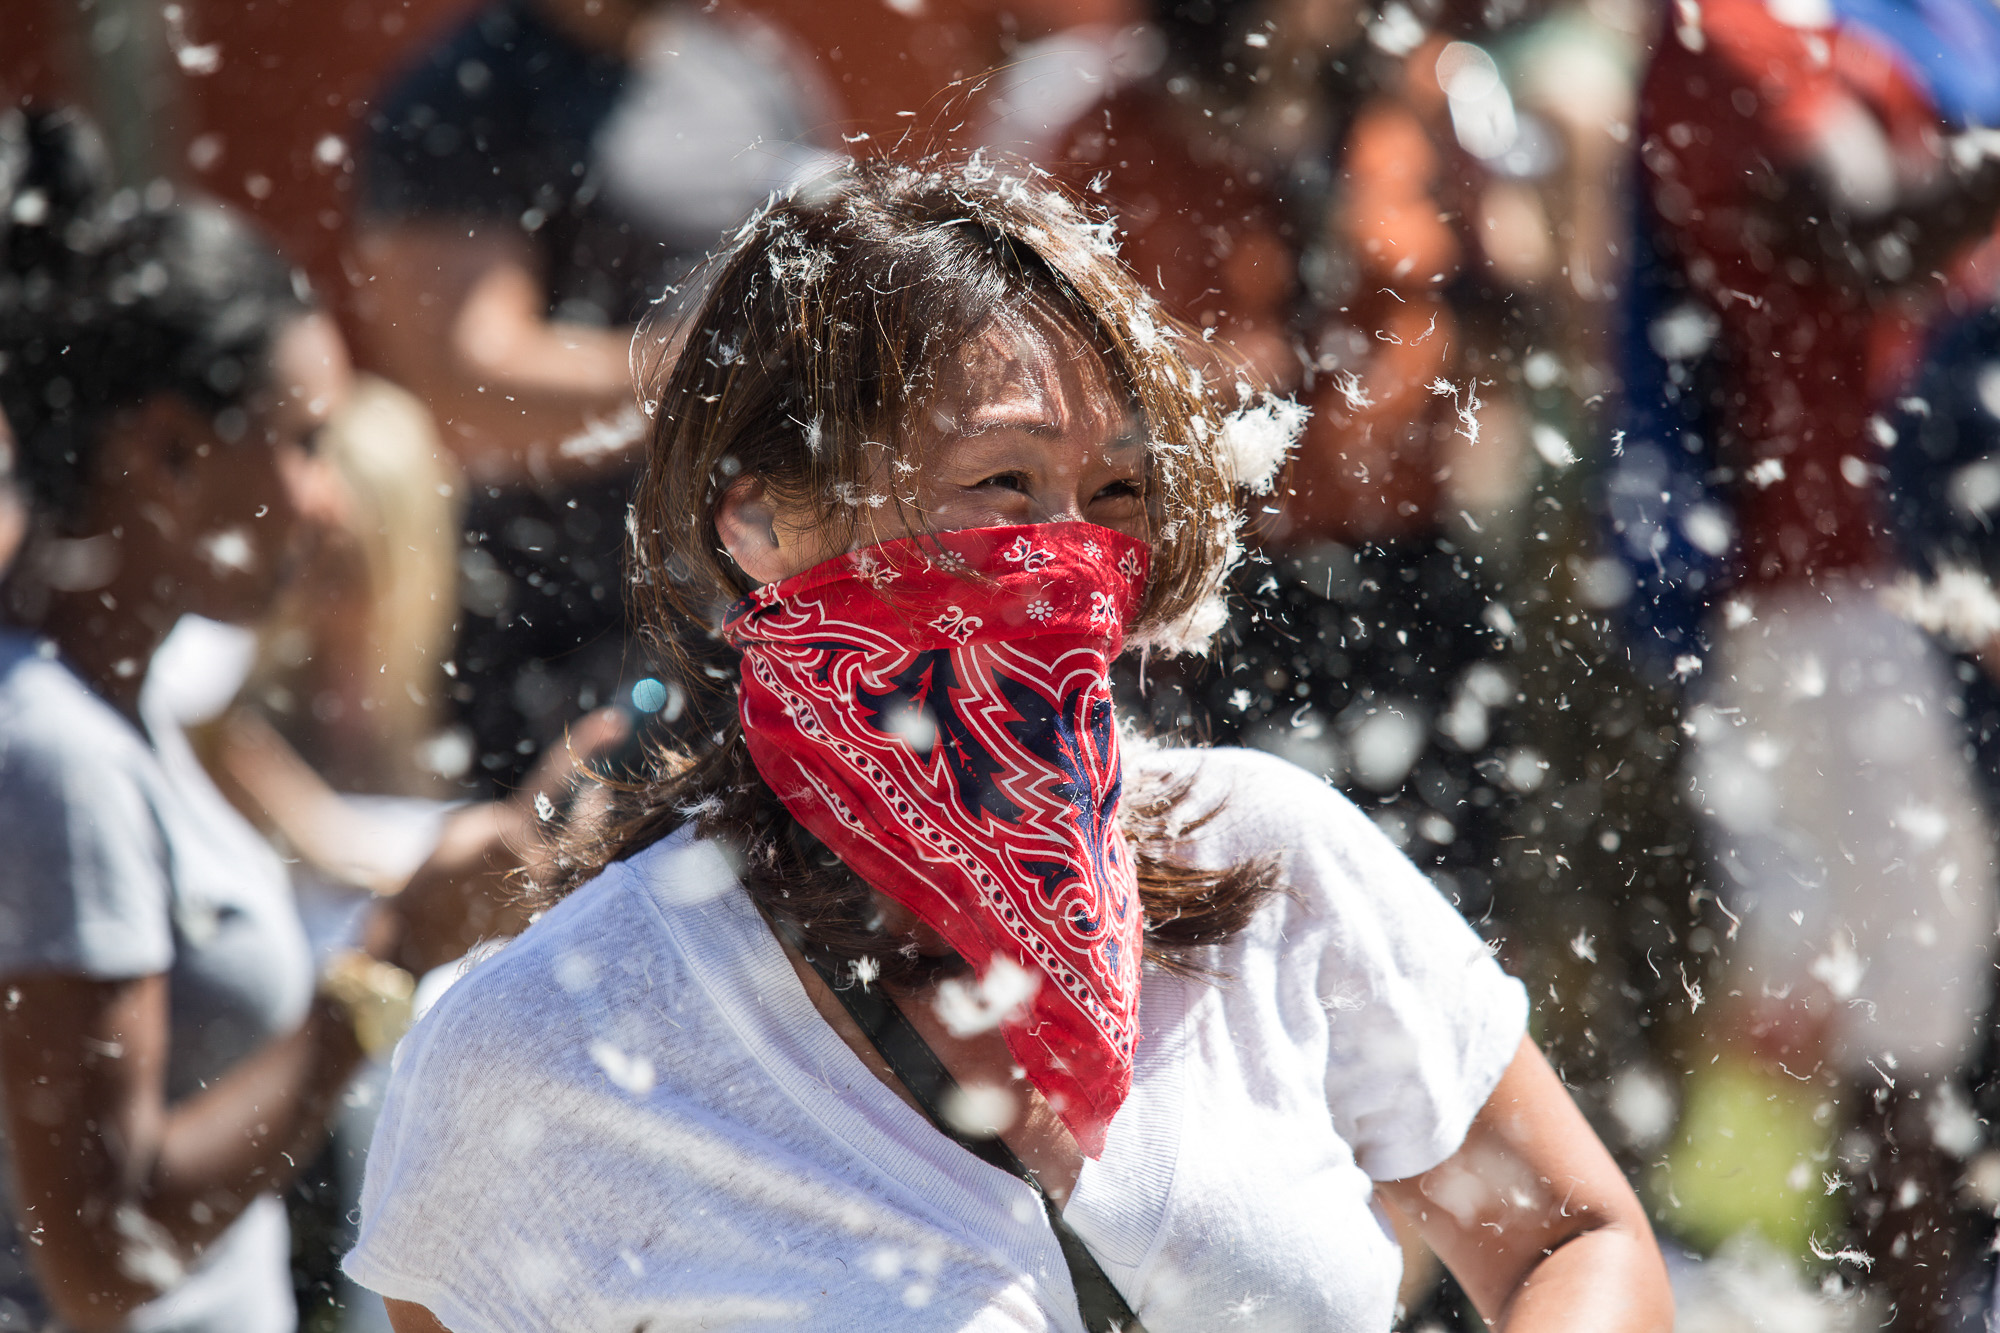 LA local Kris Chen enjoys and takes part in the annual International Pillow Fight Day fight in Pershing Square in Downtown Los Angles on Saturday, April 1 2017. Hundreds of people traded soft blows in a giant pillow fight that dwarfed even the biggest slumber party slugfest. Children, teens, adults and seniors swung pillows at one another for over 2 hours during Saturdays event. (Corsair Photo: Matthew Martin)